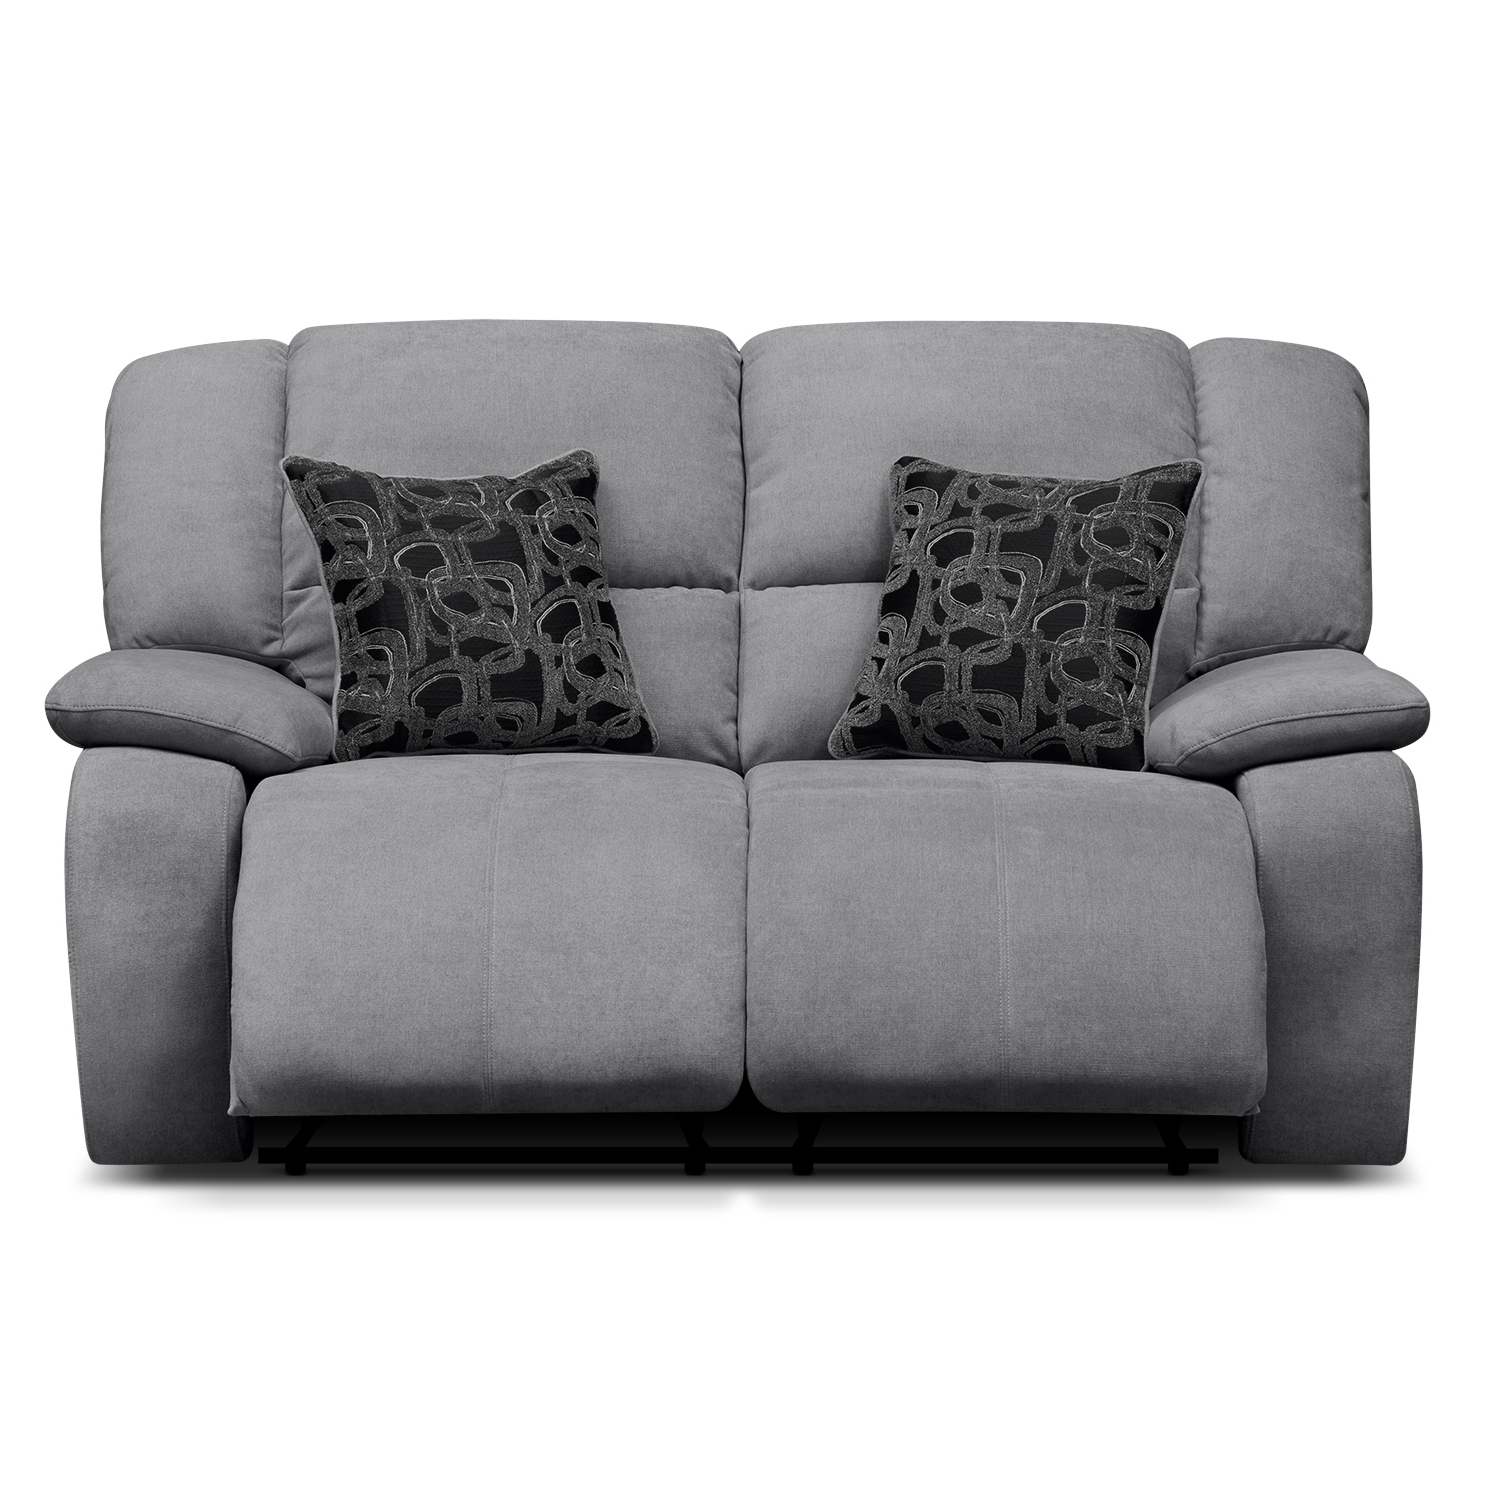 Popular Recliner Sofas With Regard To Media Sofa Recliner Tags : Modern Recliner Sofas Traditional (View 15 of 17)